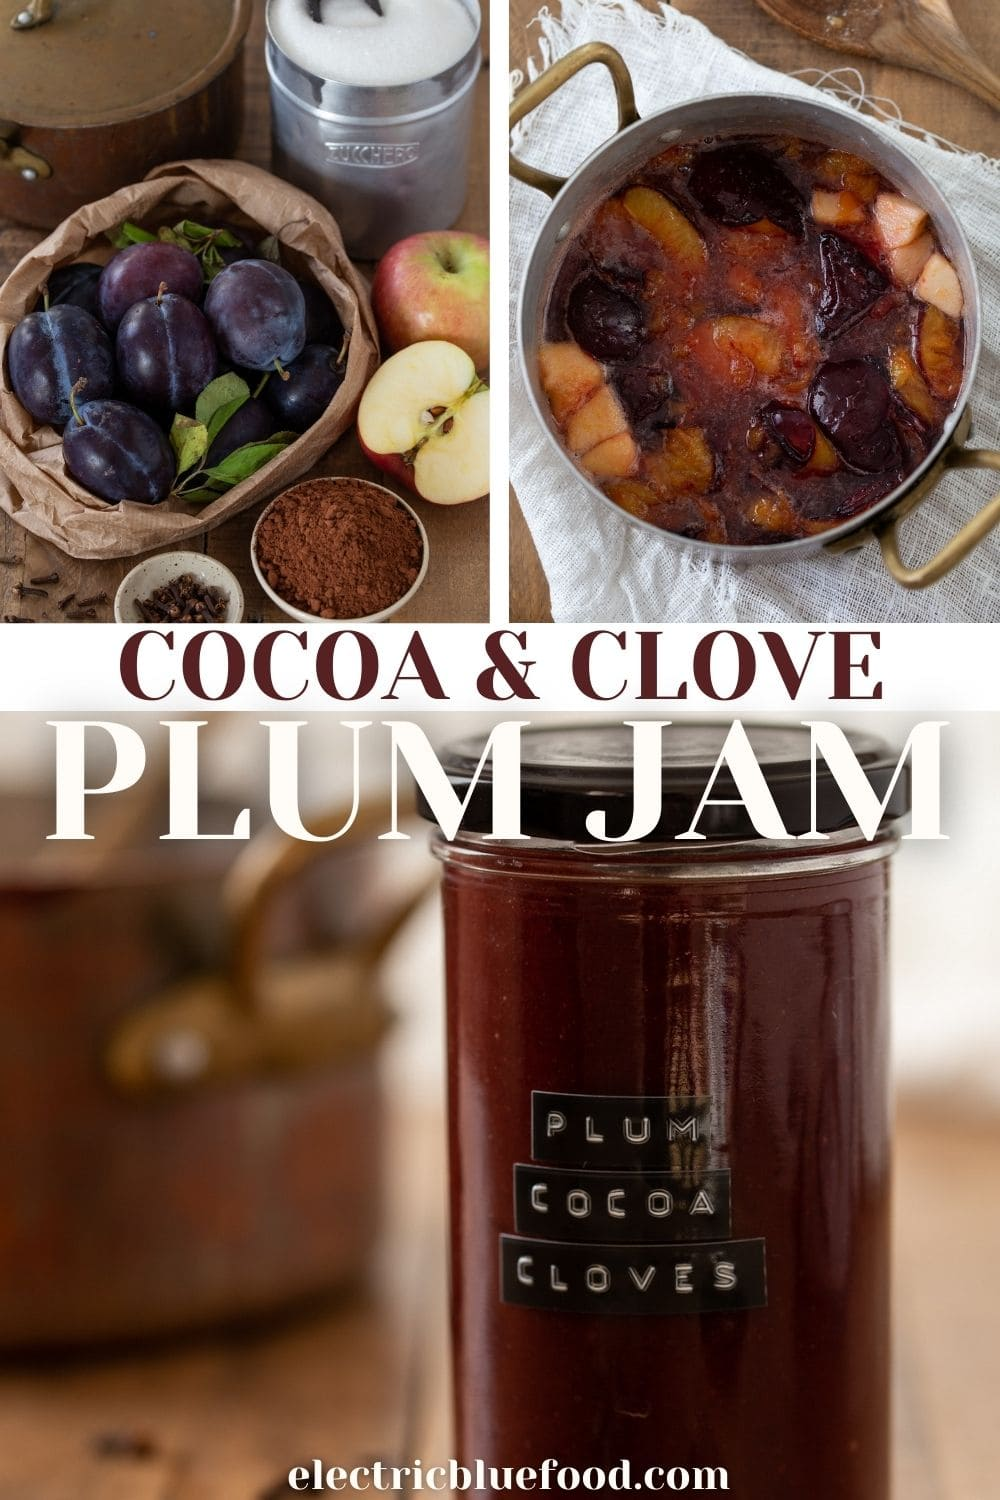 A spiced plum jam with cocoa and cloves. Perfect as tart filling, to spread on toast or to serve with cheese. Its subtle spiced notes make it perfect for the fall and winter.